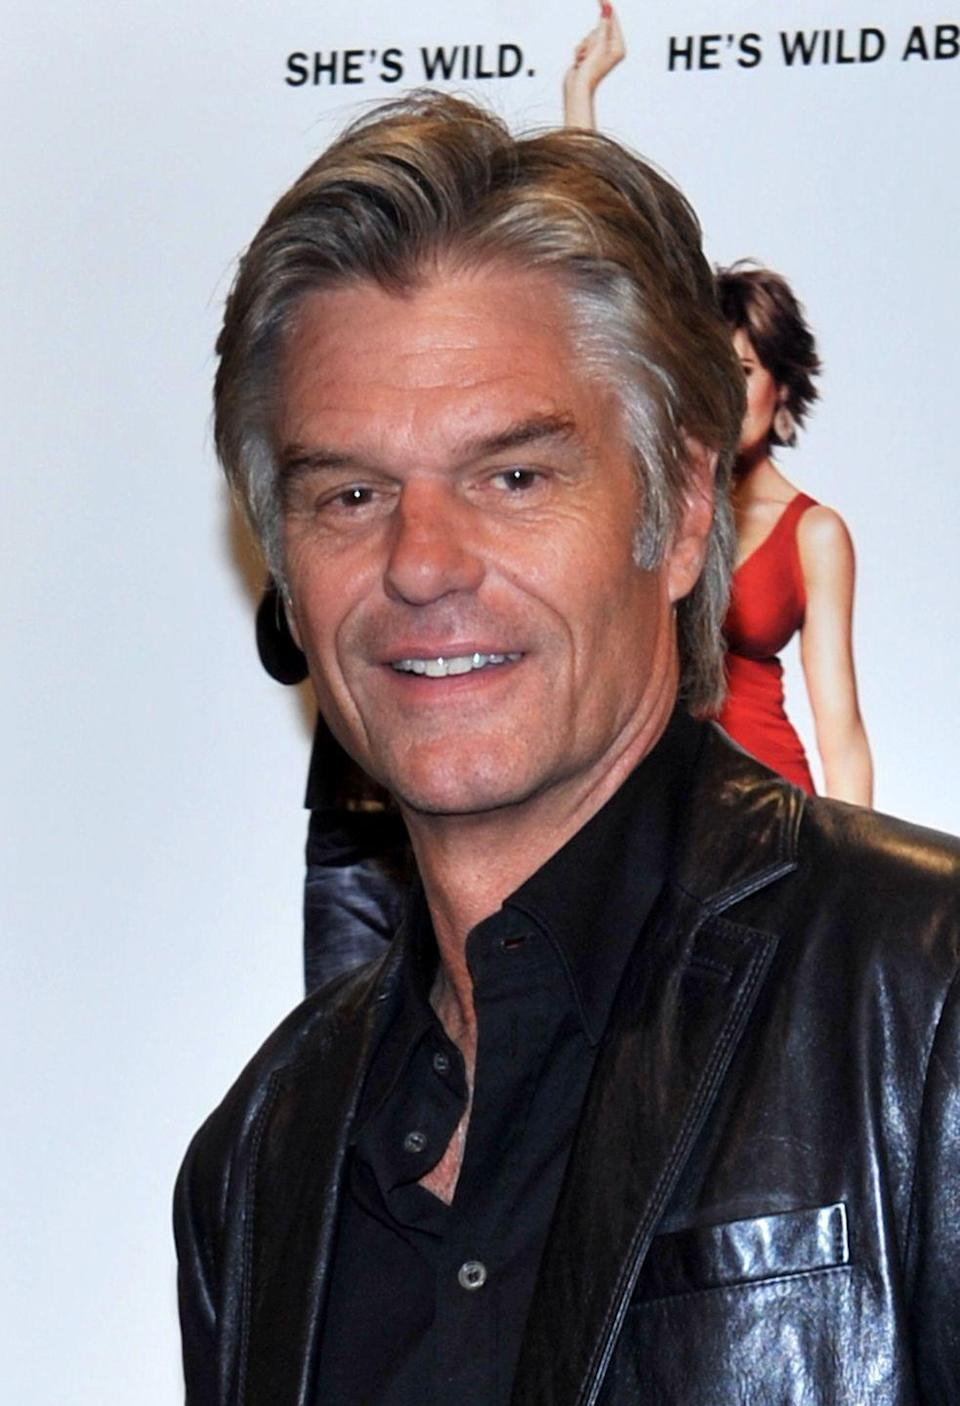 <p>Harry Hamlin, the actor who plays Aaron, booked a film in Australia that conflicted with filming of the season 1 finale, so Rob almost had to change who killed Lilly at the last minute. But Harry turned the gig—and we're so glad he did.</p>